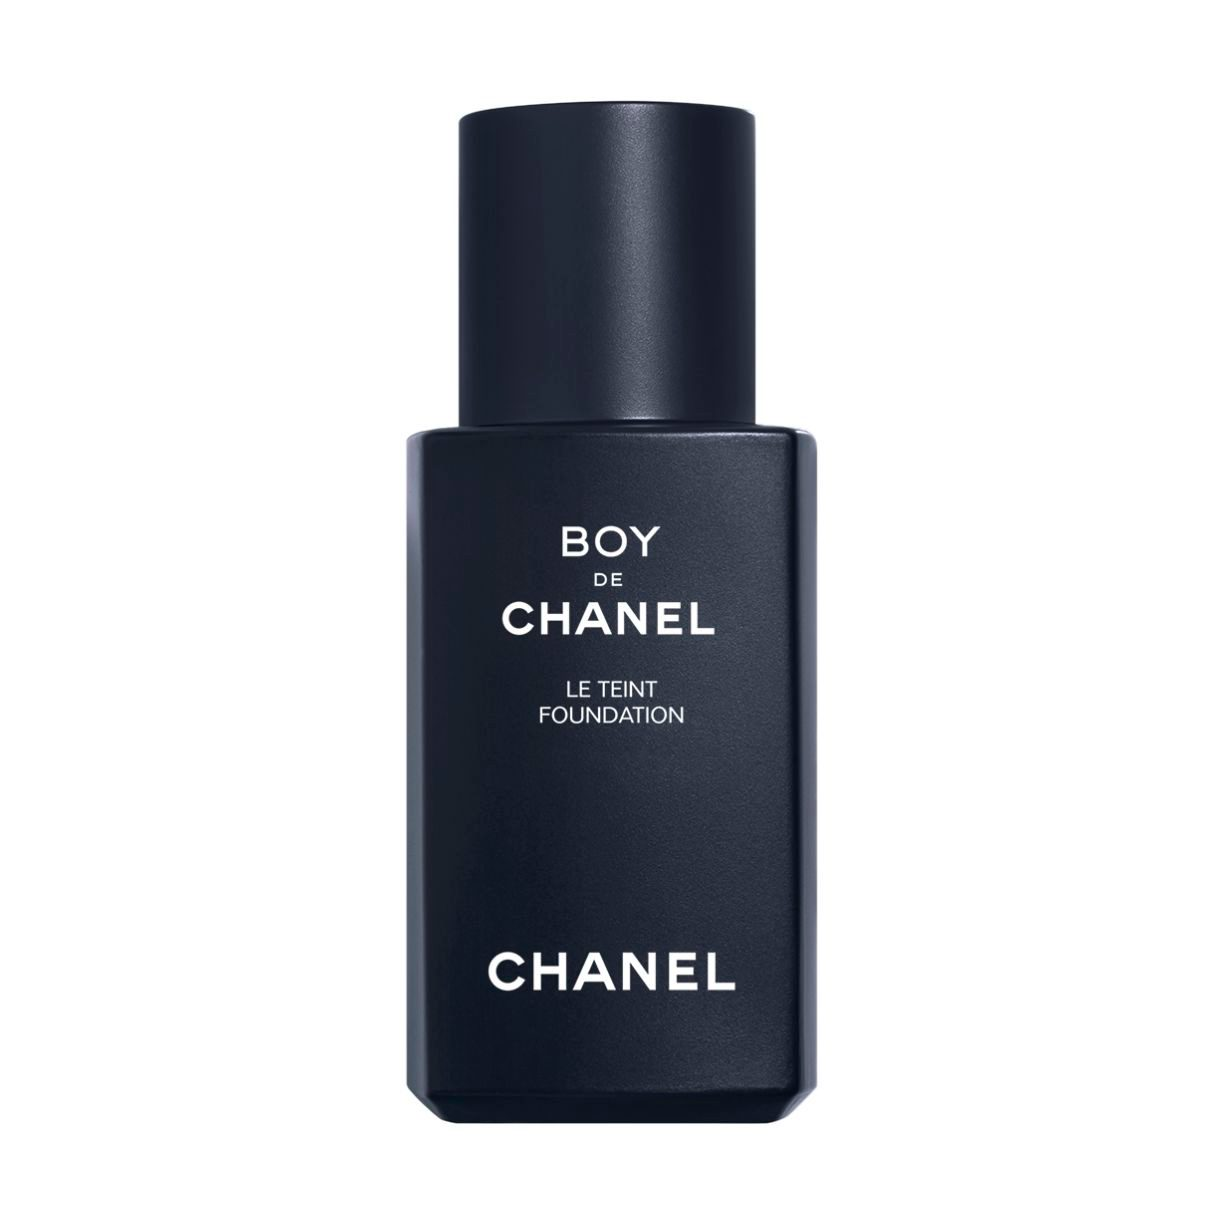 BOY DE CHANEL FOUNDATION SUBTLE AND LONGWEARING COMPLEXION ENHANCER N°20 - LIGHT